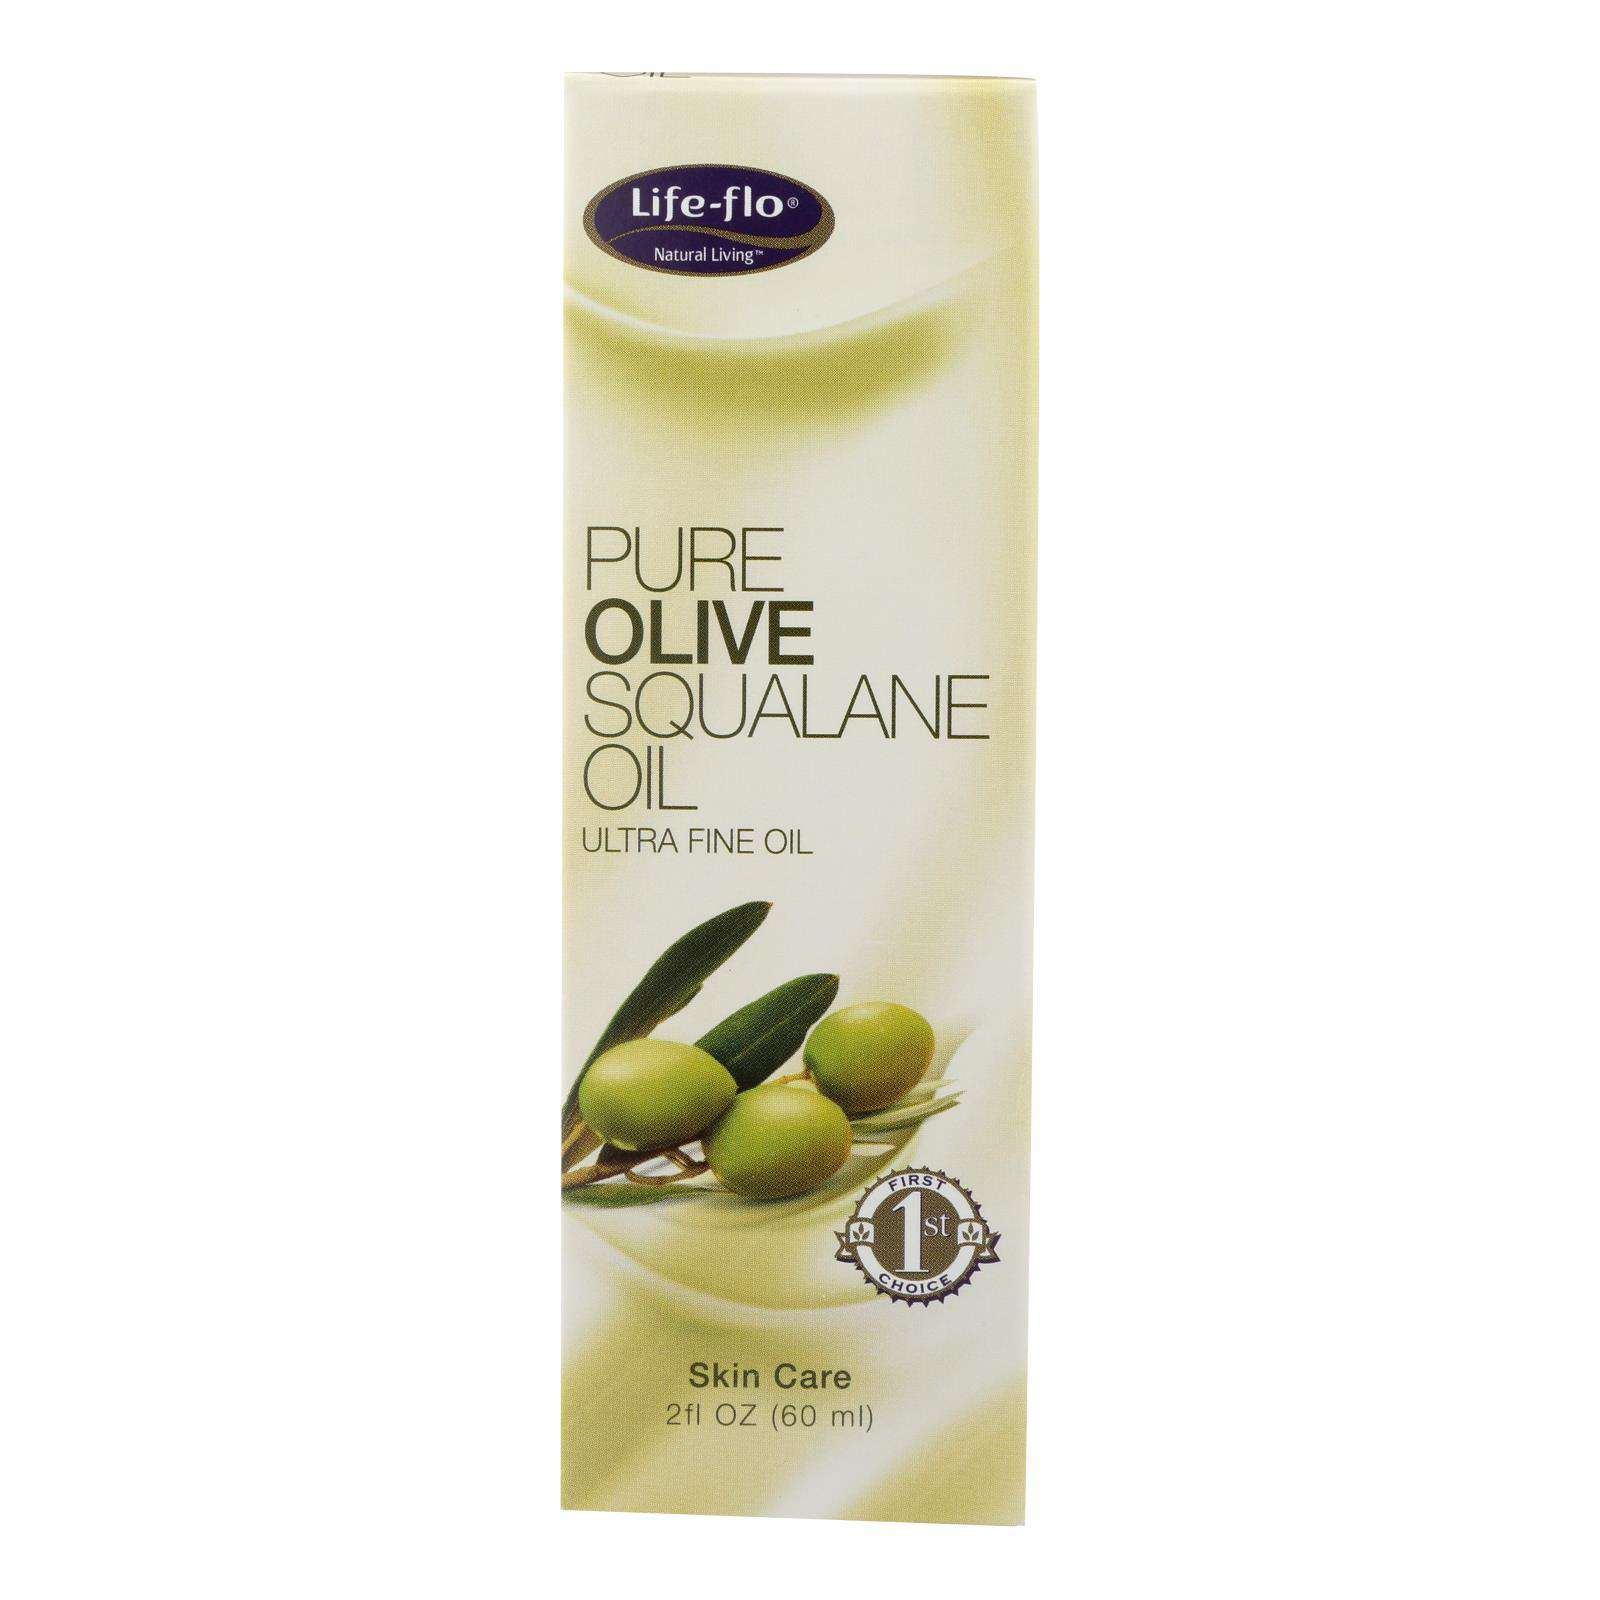 Life-flo Olive Squalane Oil Pure - 2 Fl Oz - BeeGreen